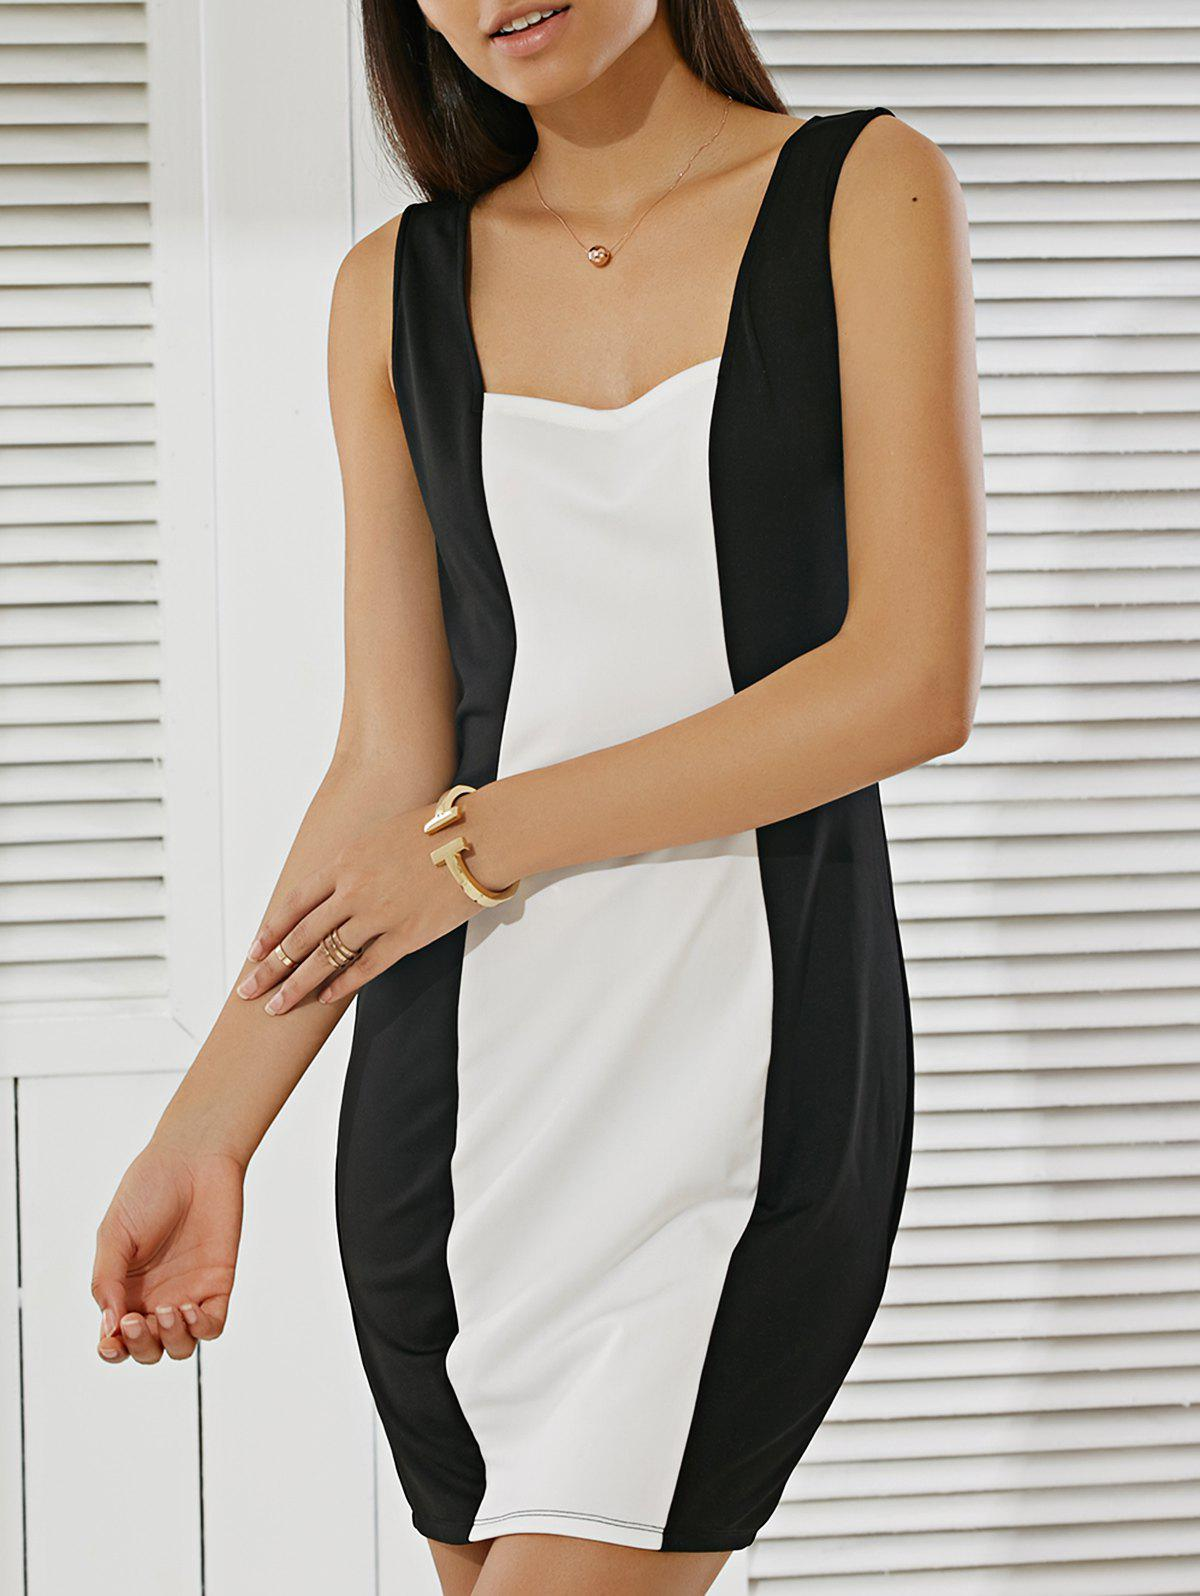 Fashionable Fitted Square Neck Color Block Dress - WHITE/BLACK M